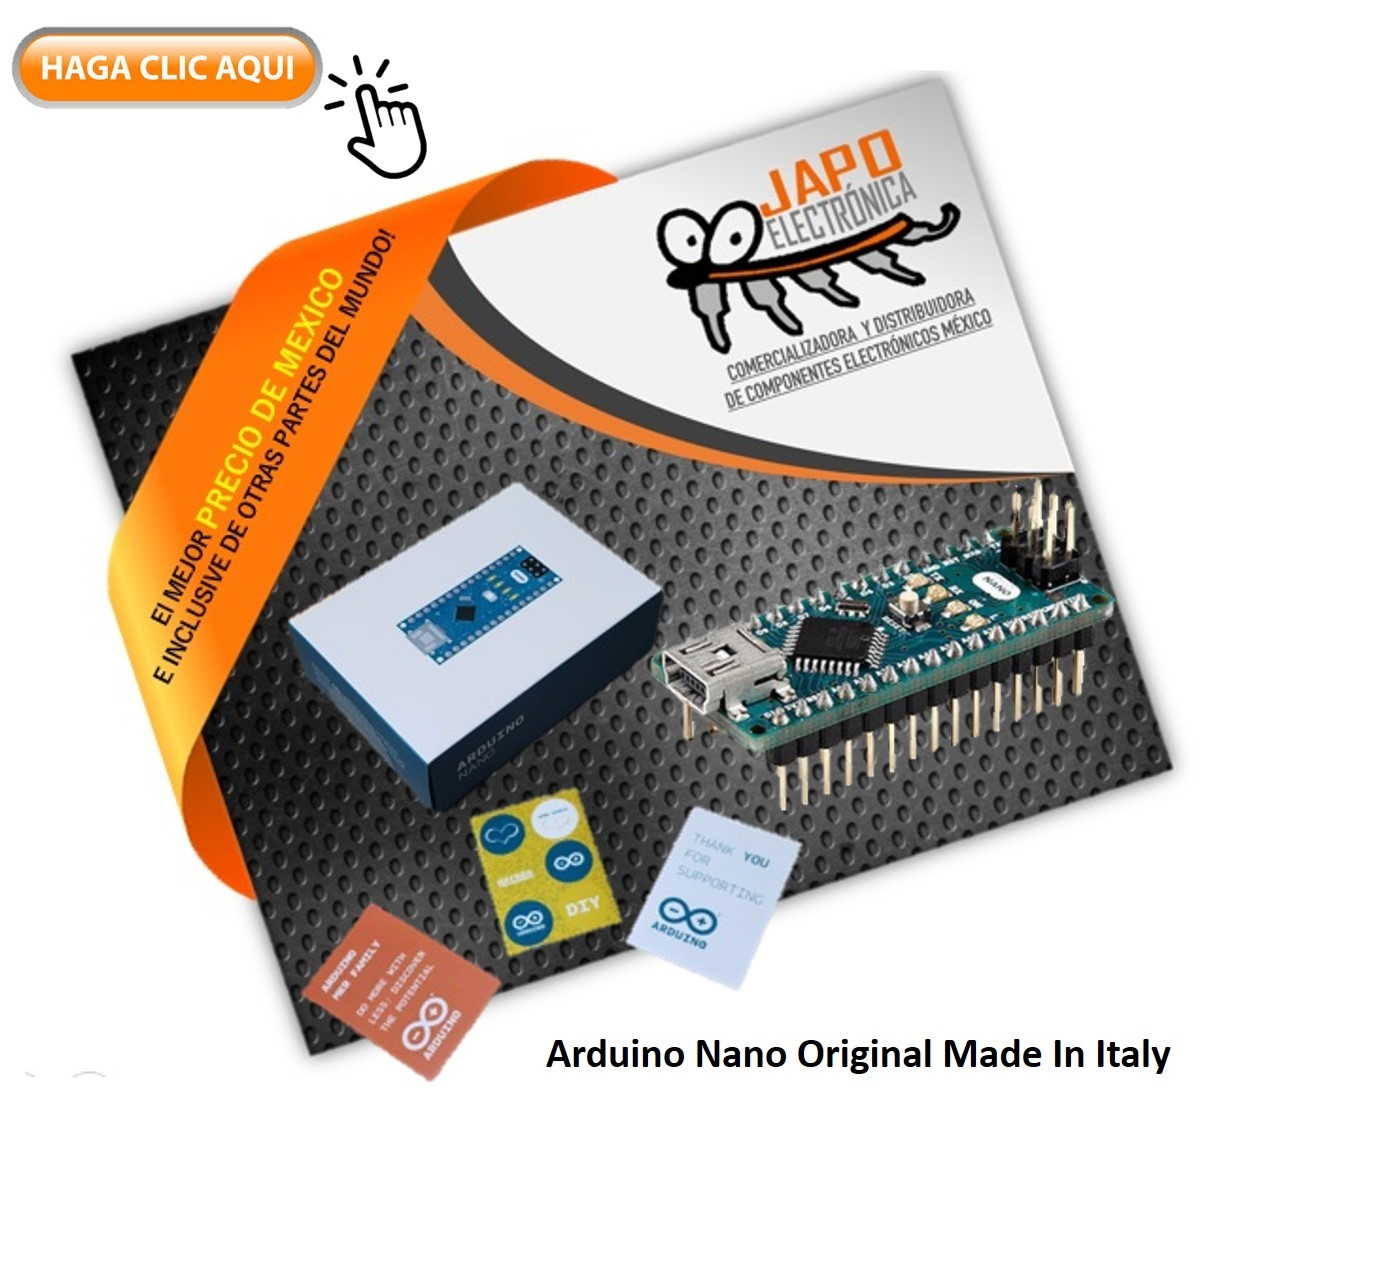 Arduino Nano Original Made In Italy